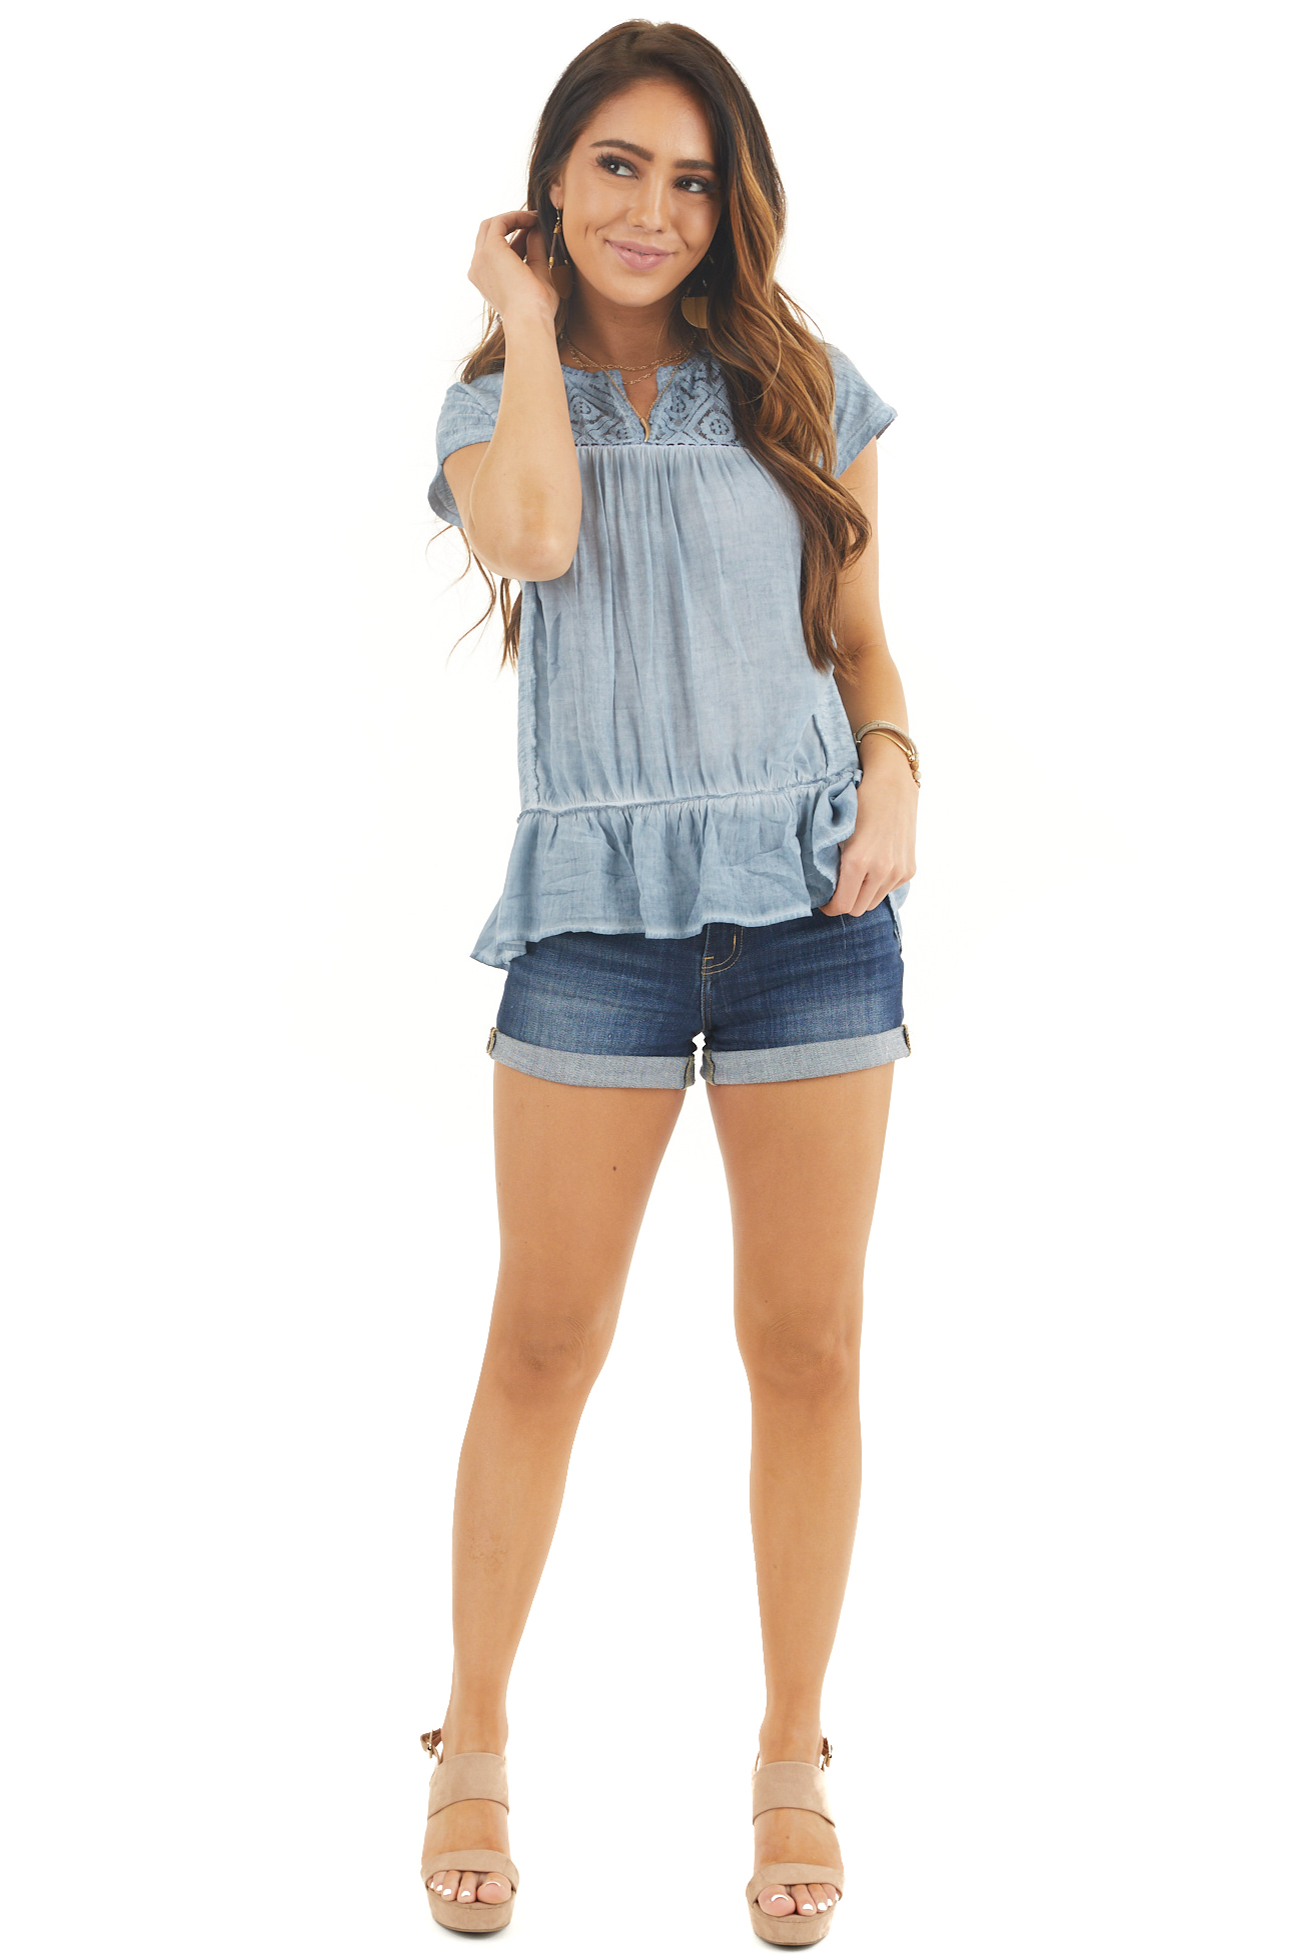 Antique Blue Sheer Lace Short Sleeve Top with Ruffle Hemline